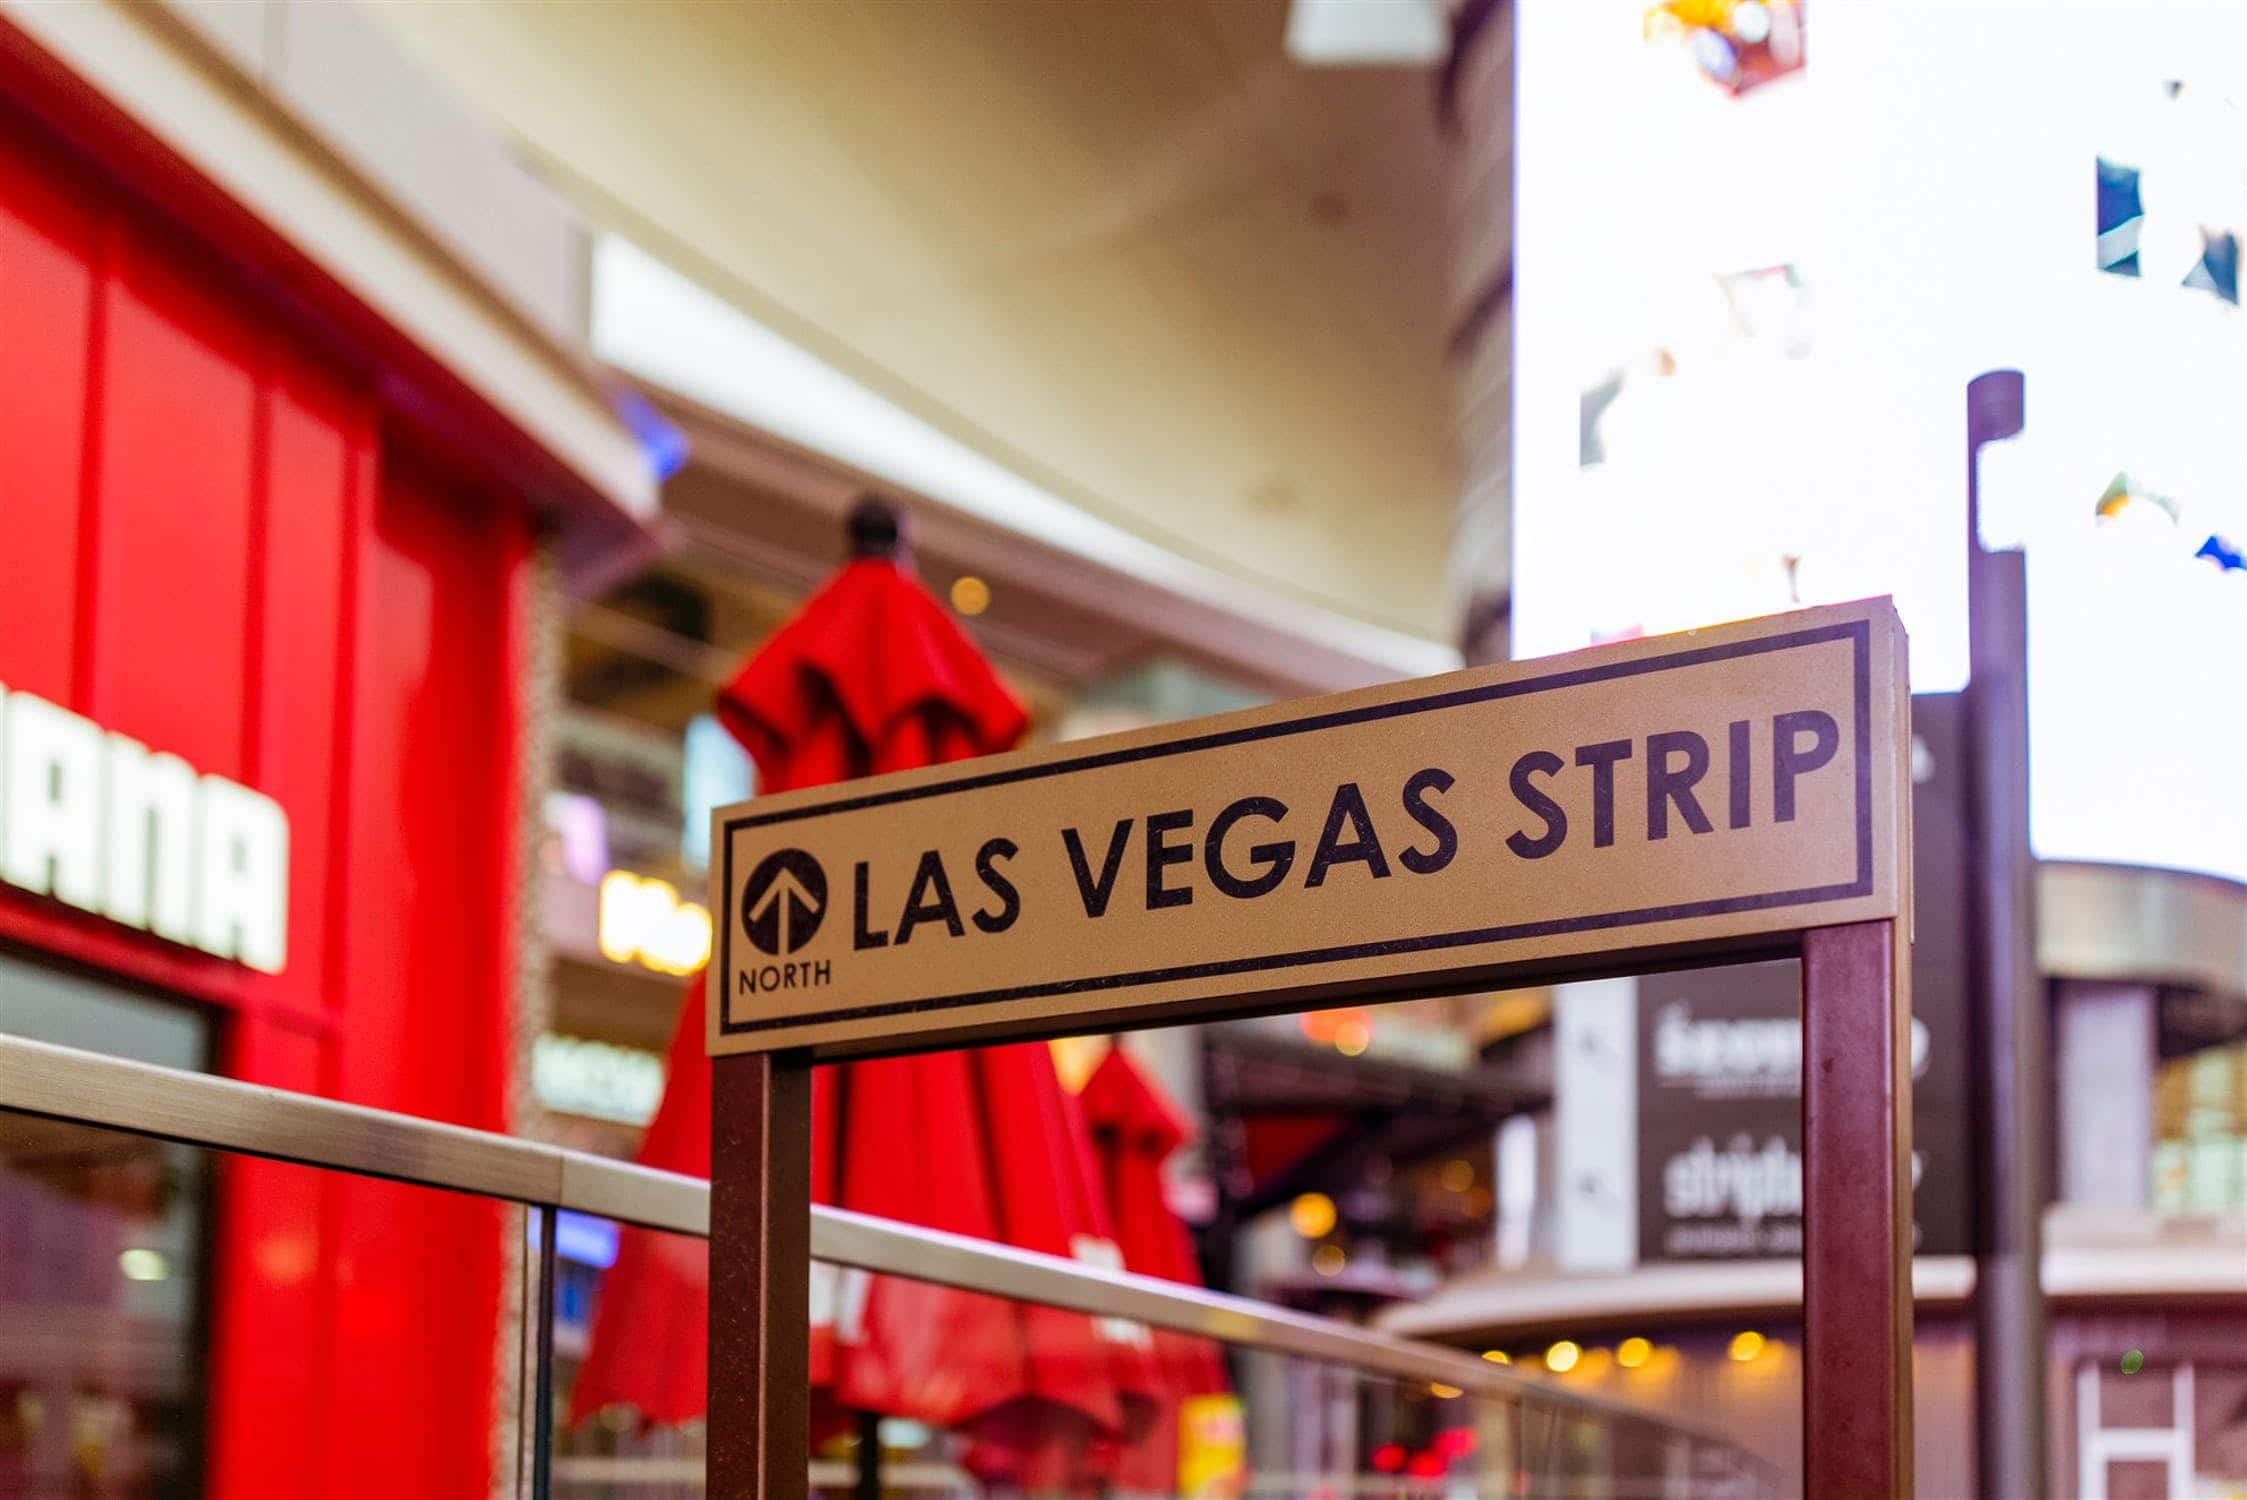 Las Vegas Travel Tips For First Timers, Vacation Tips - 52 Perfect Days